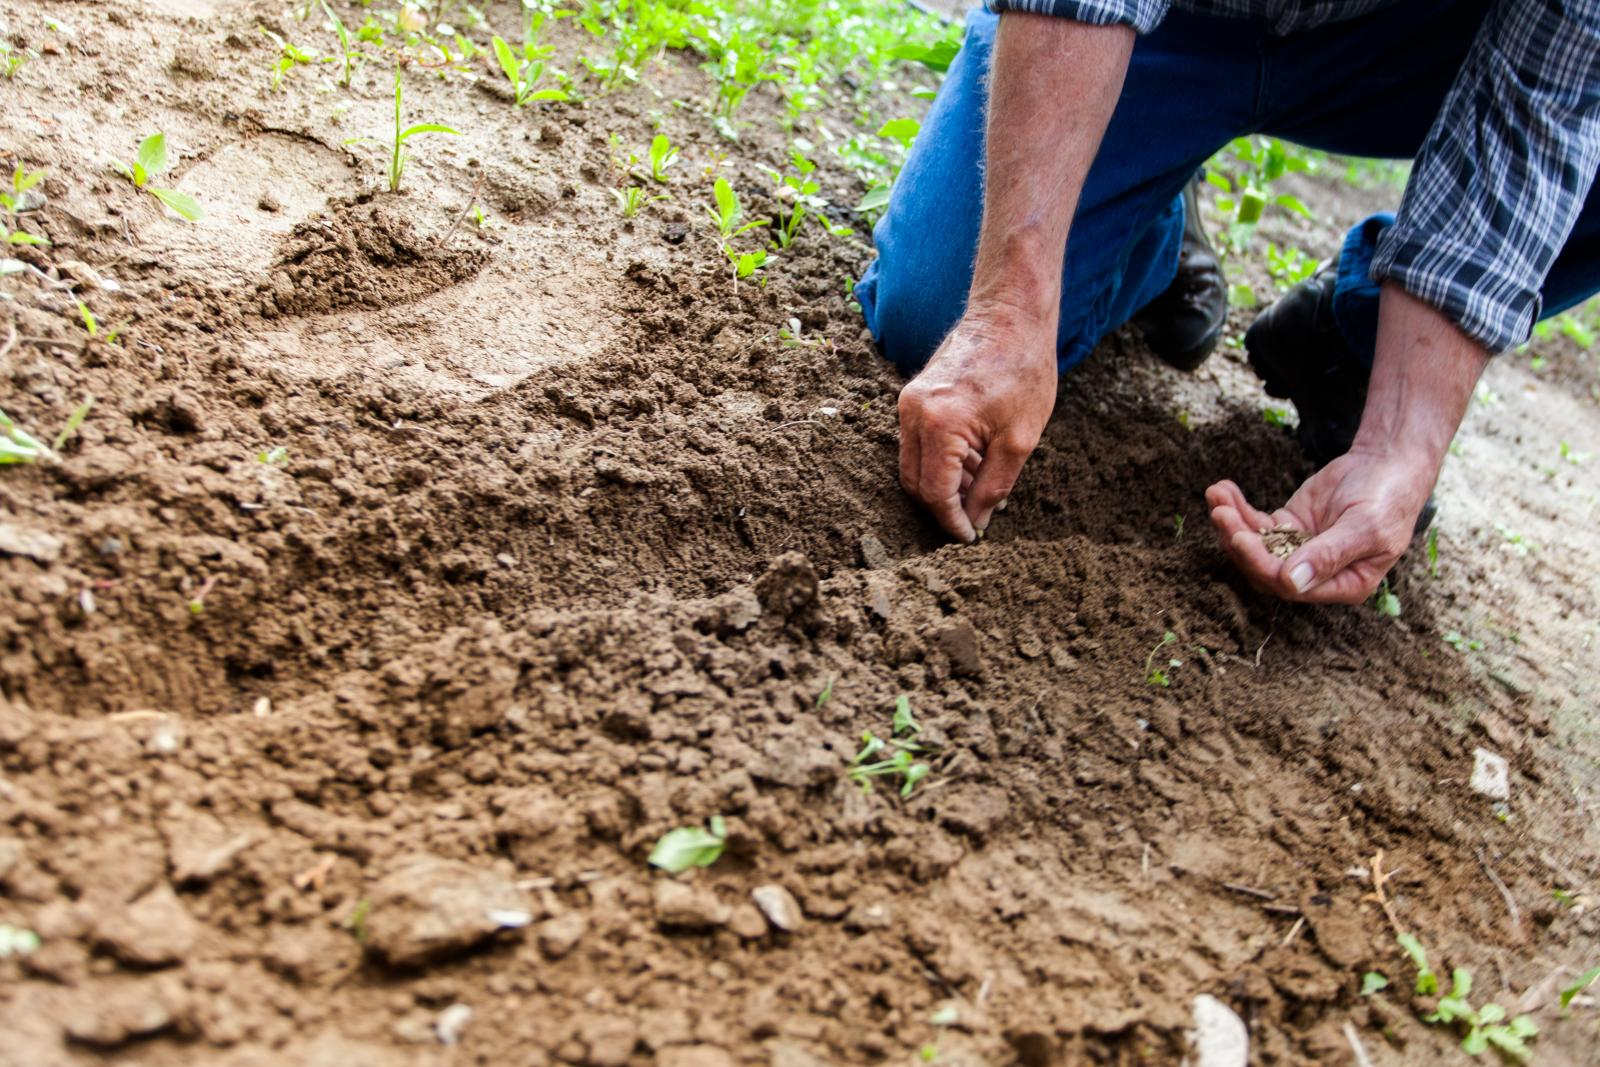 Planting seeds. Photo credit: Pexels